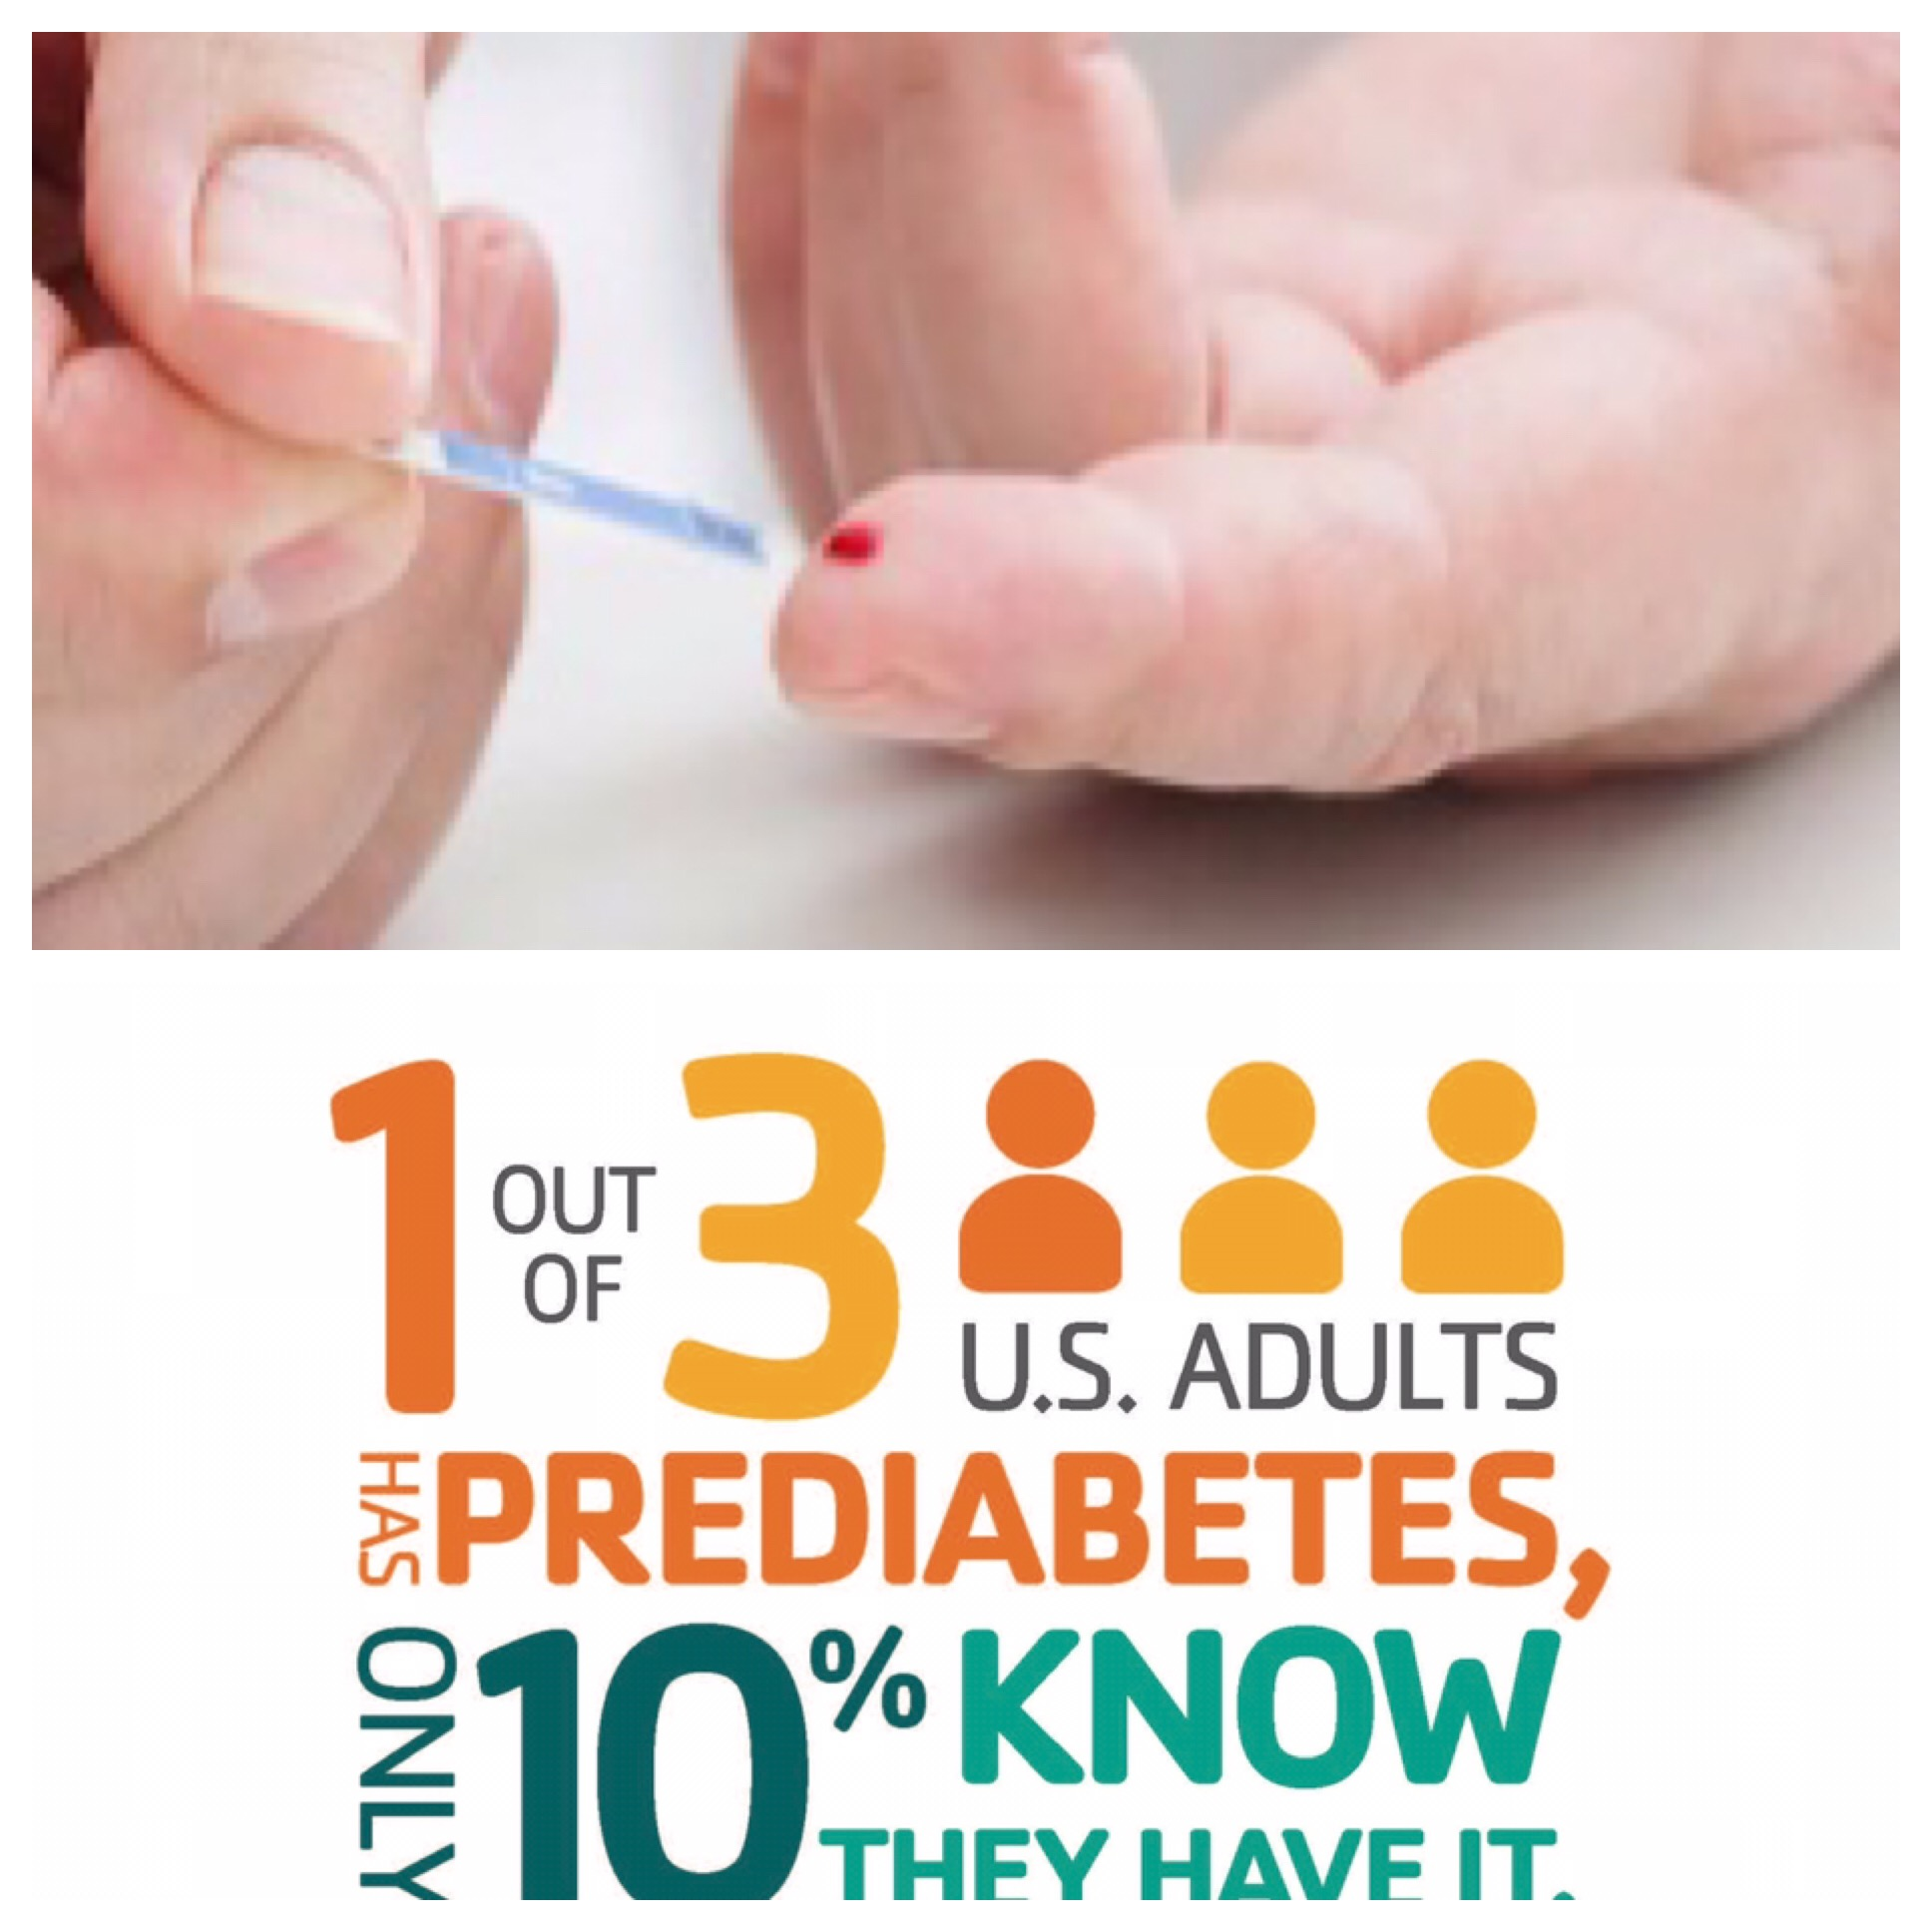 Beef Up Patient Education & Management Tools With Diabetes Alert Day Resources